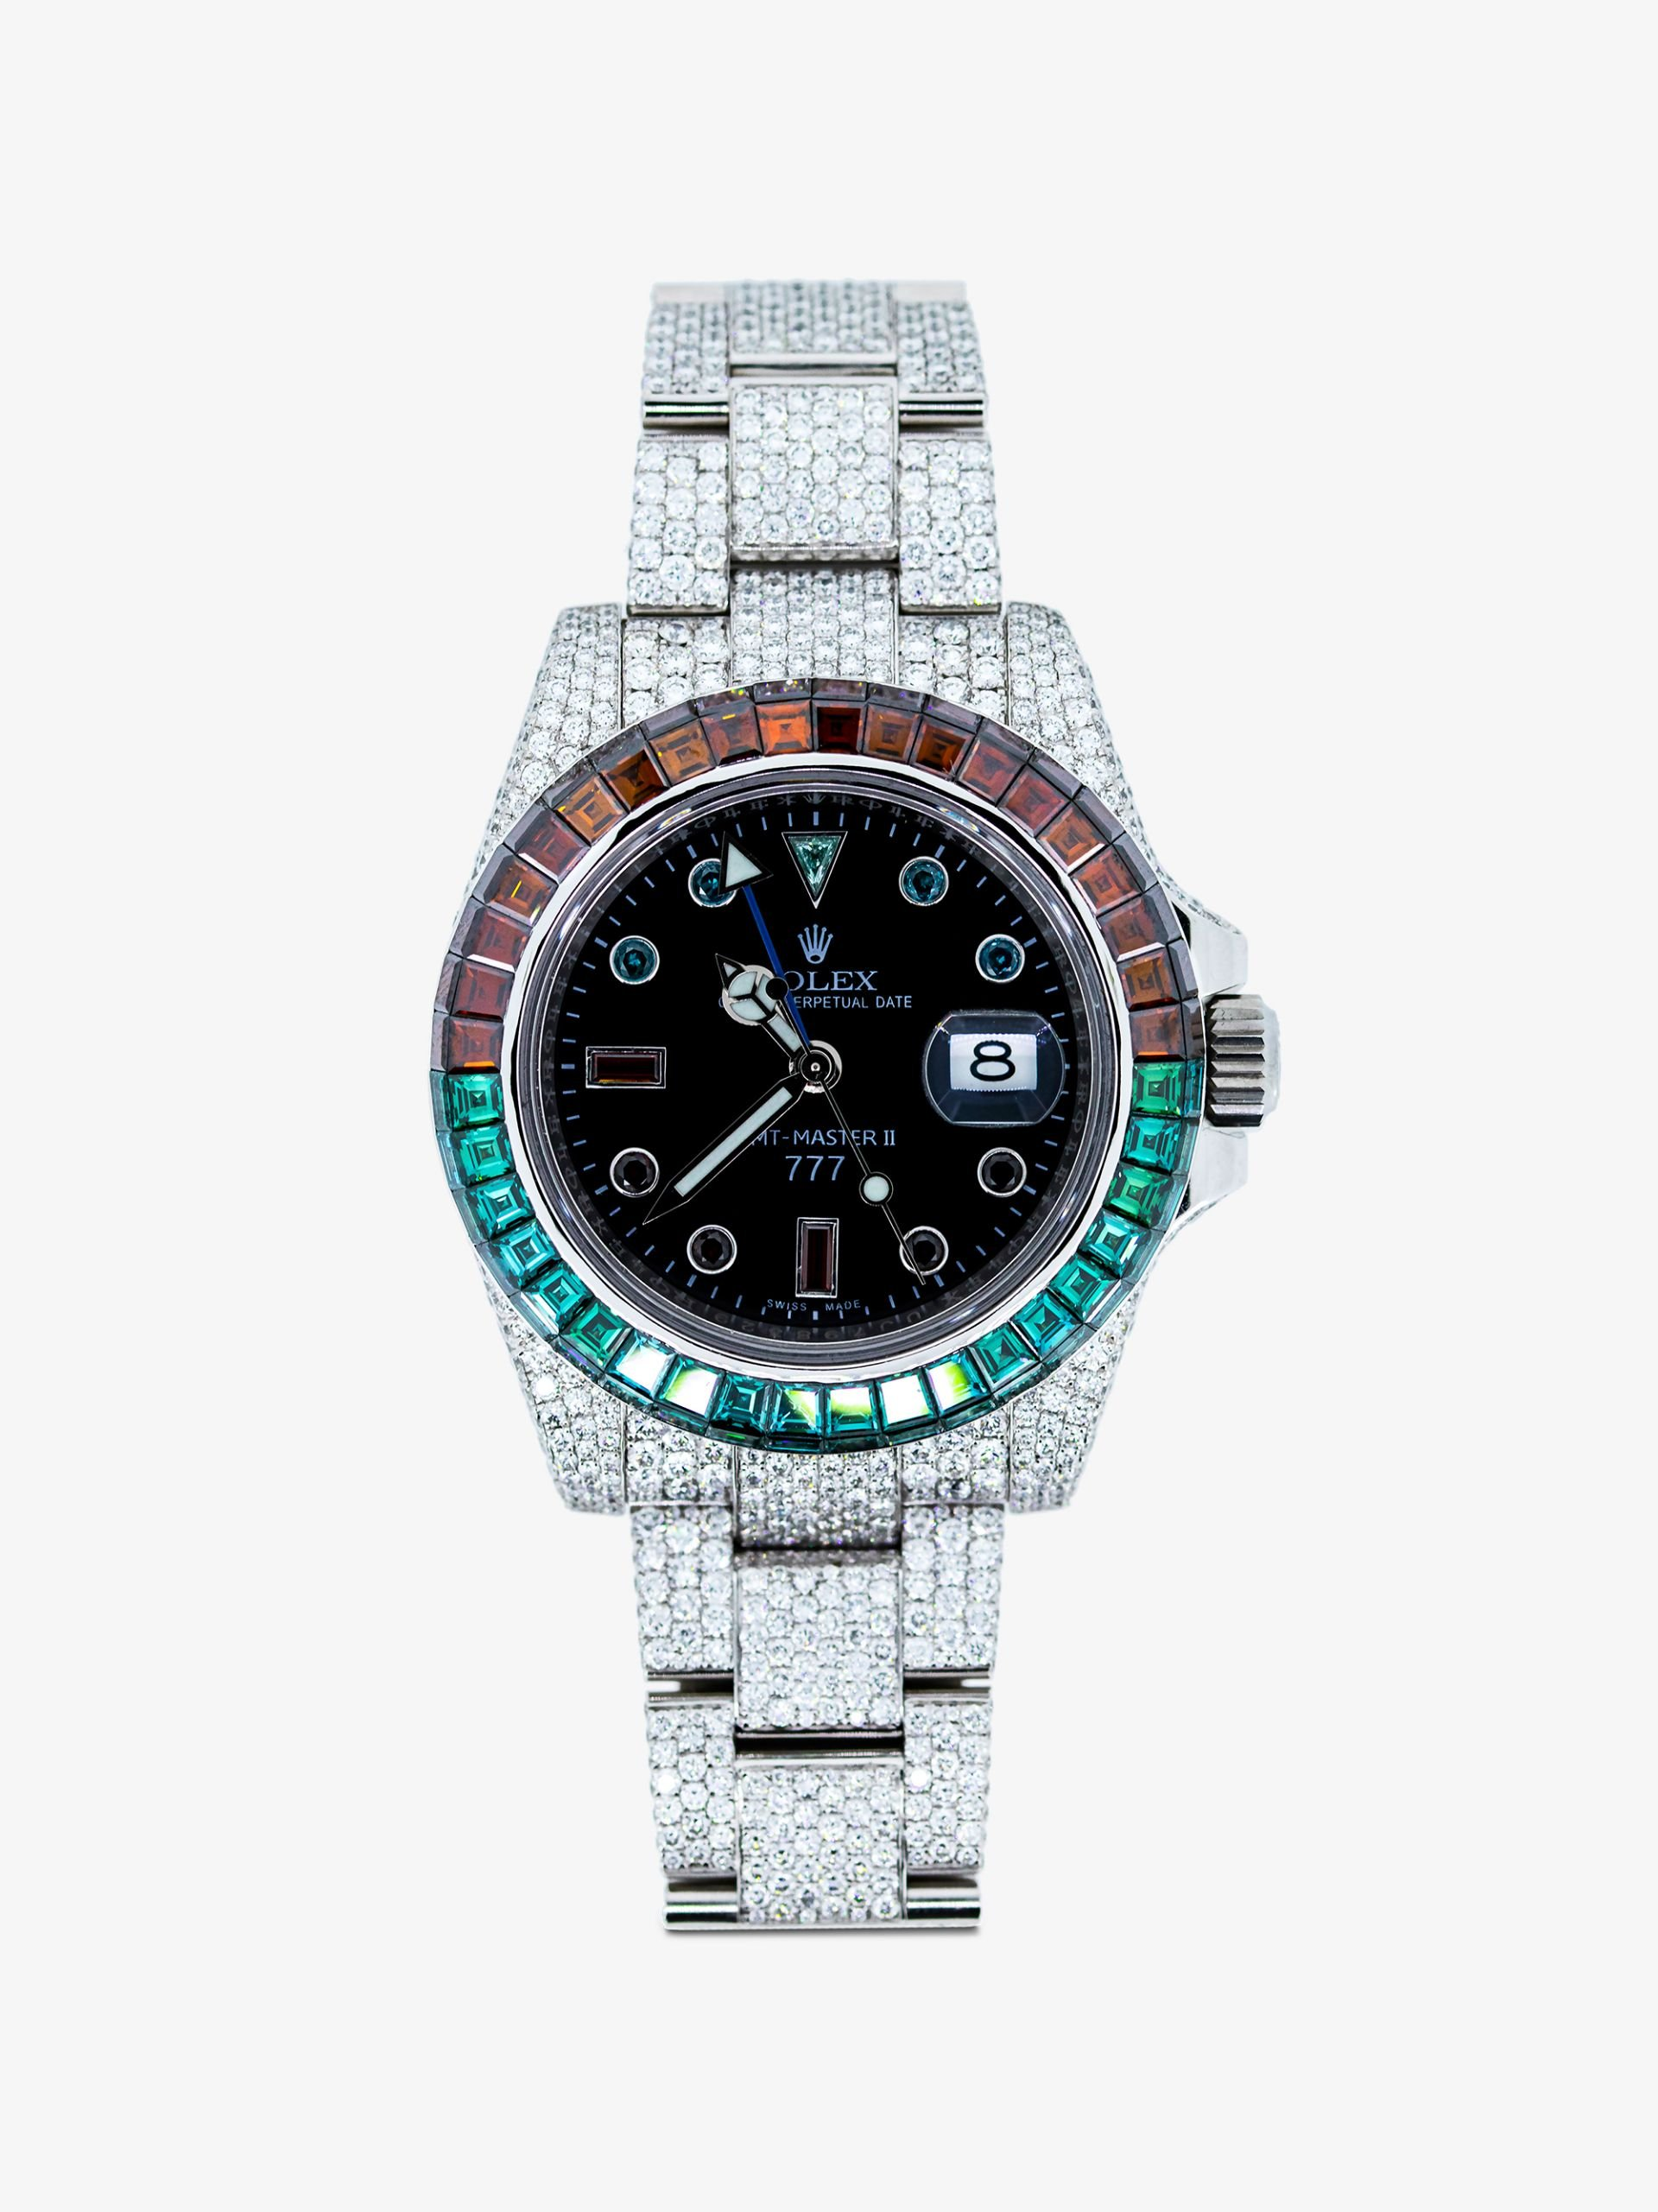 Rolex GMT Master II Iced Cold Pepsi.